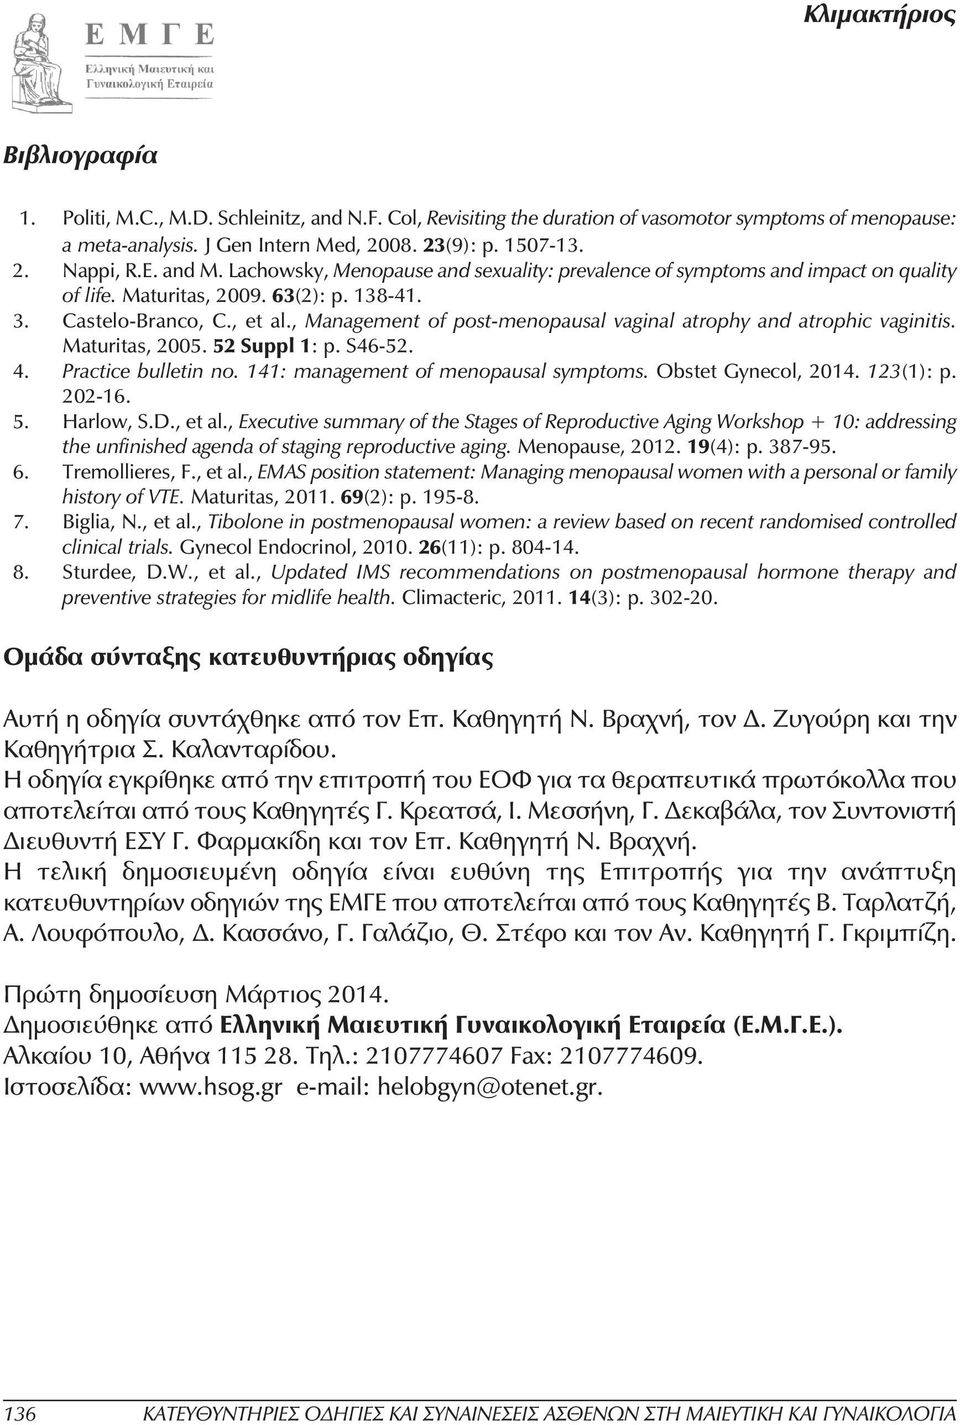 , Management of post-menopausal vaginal atrophy and atrophic vaginitis. Maturitas, 2005. 52 Suppl 1: p. S46-52. 4. Practice bulletin no. 141: management of menopausal symptoms. Obstet Gynecol, 2014.